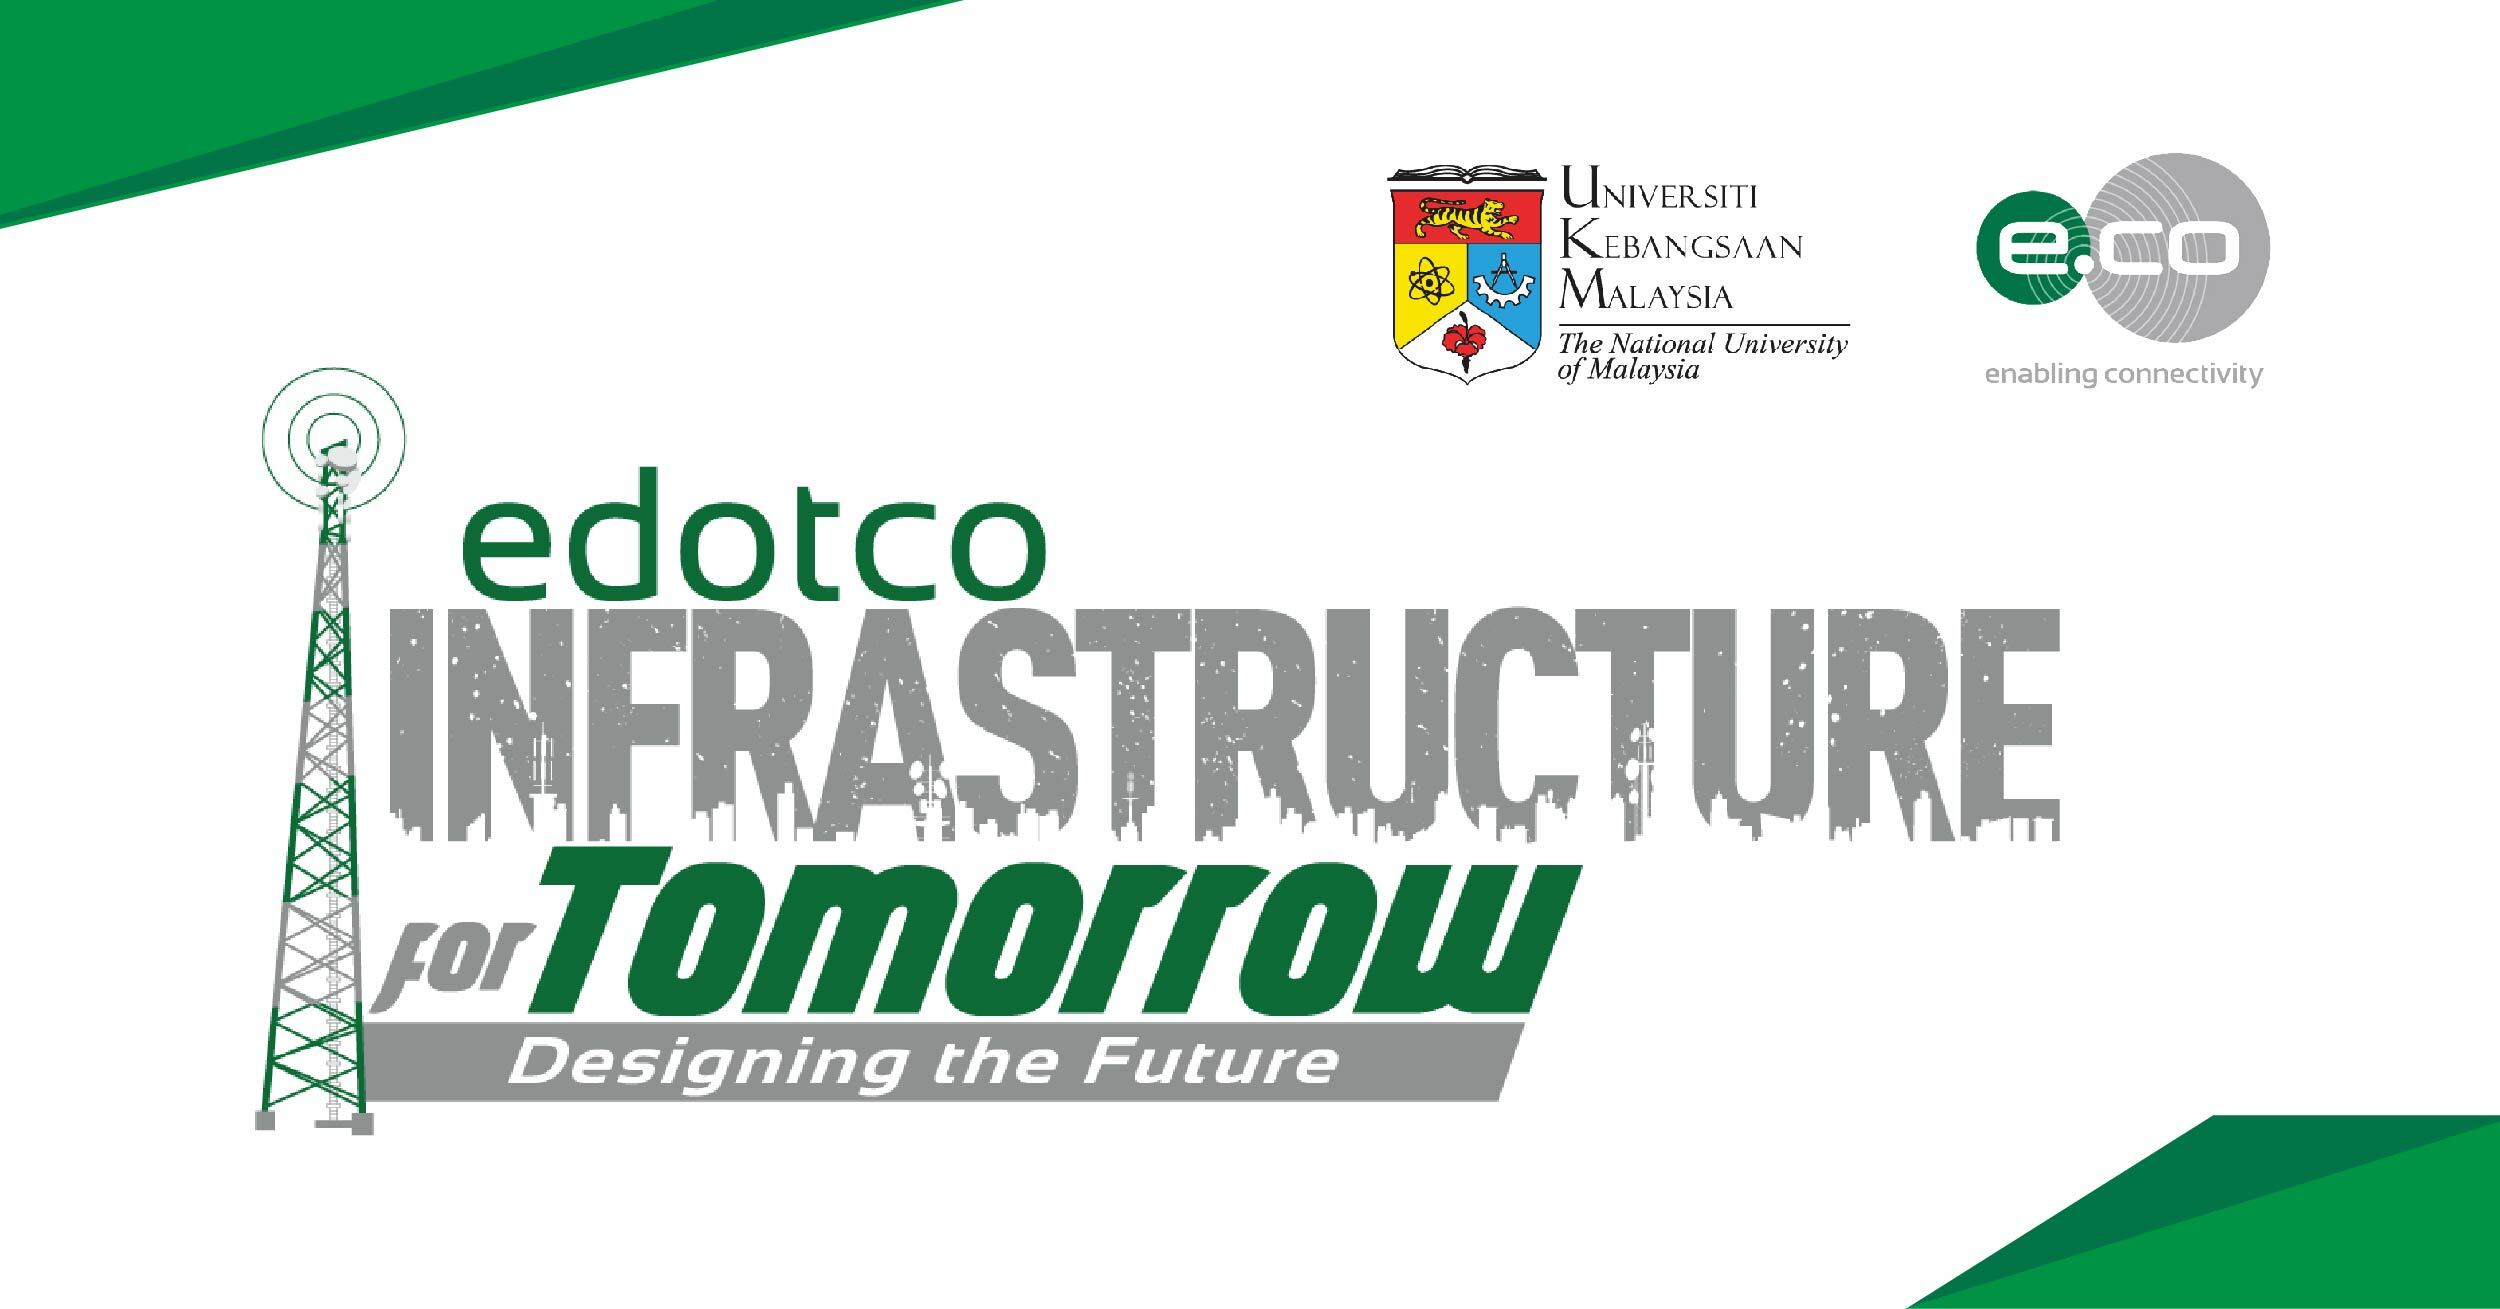 edotco Group launches inaugural Infrastructure Design Competition in collaboration with University Kebangsaan Malaysia (UKM)